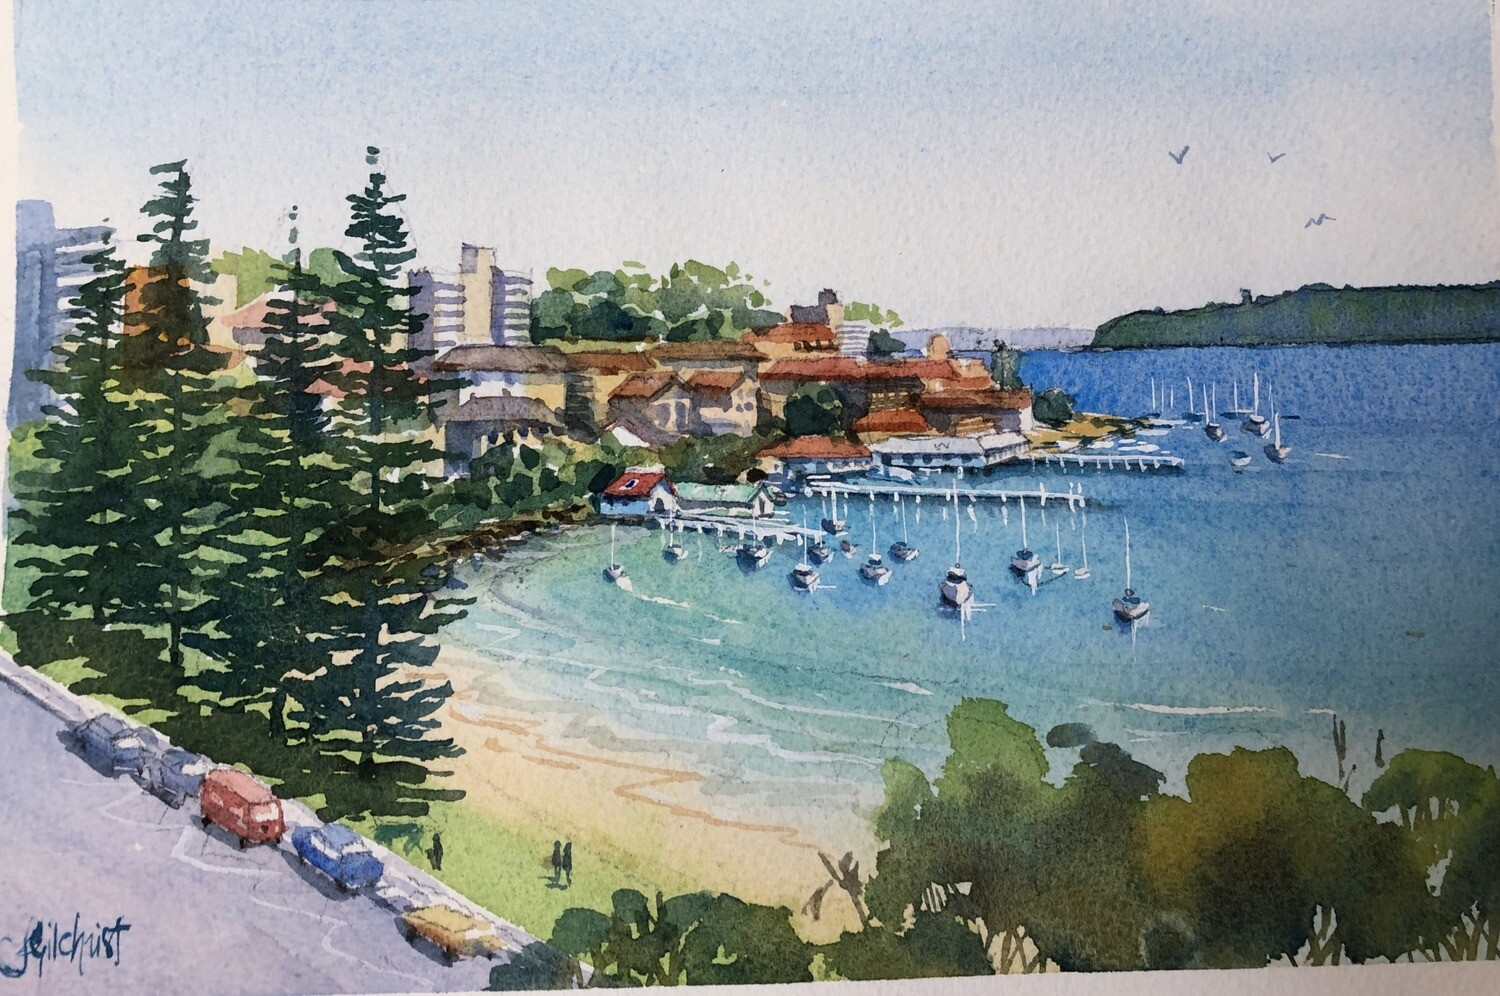 MANLY COVE EAST - Video tutorial - 2 hrs - difficult (but fun!)